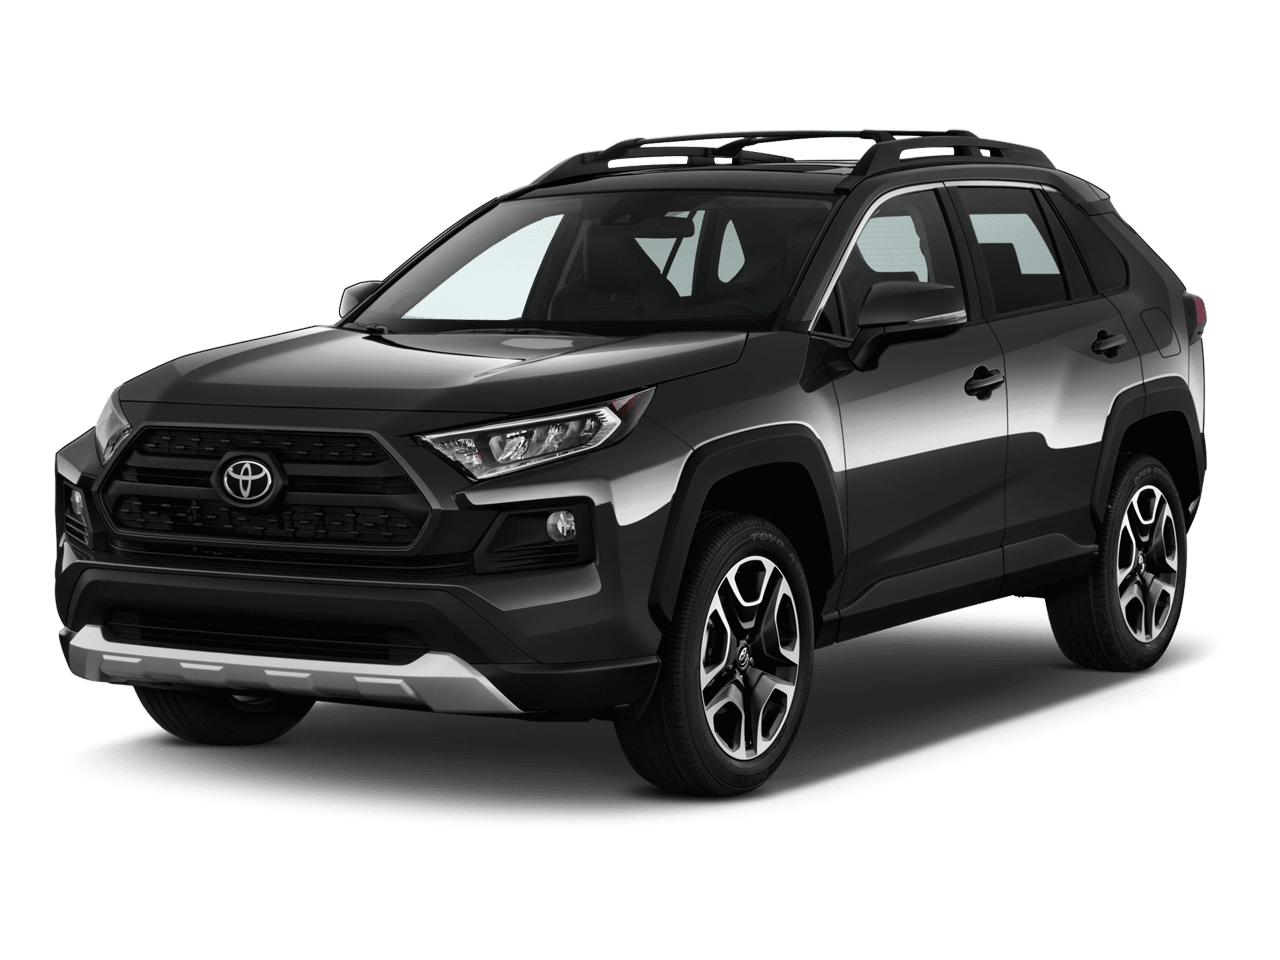 Pacific-Car-Rentals-Compact-SUV-Toyota-Rav4